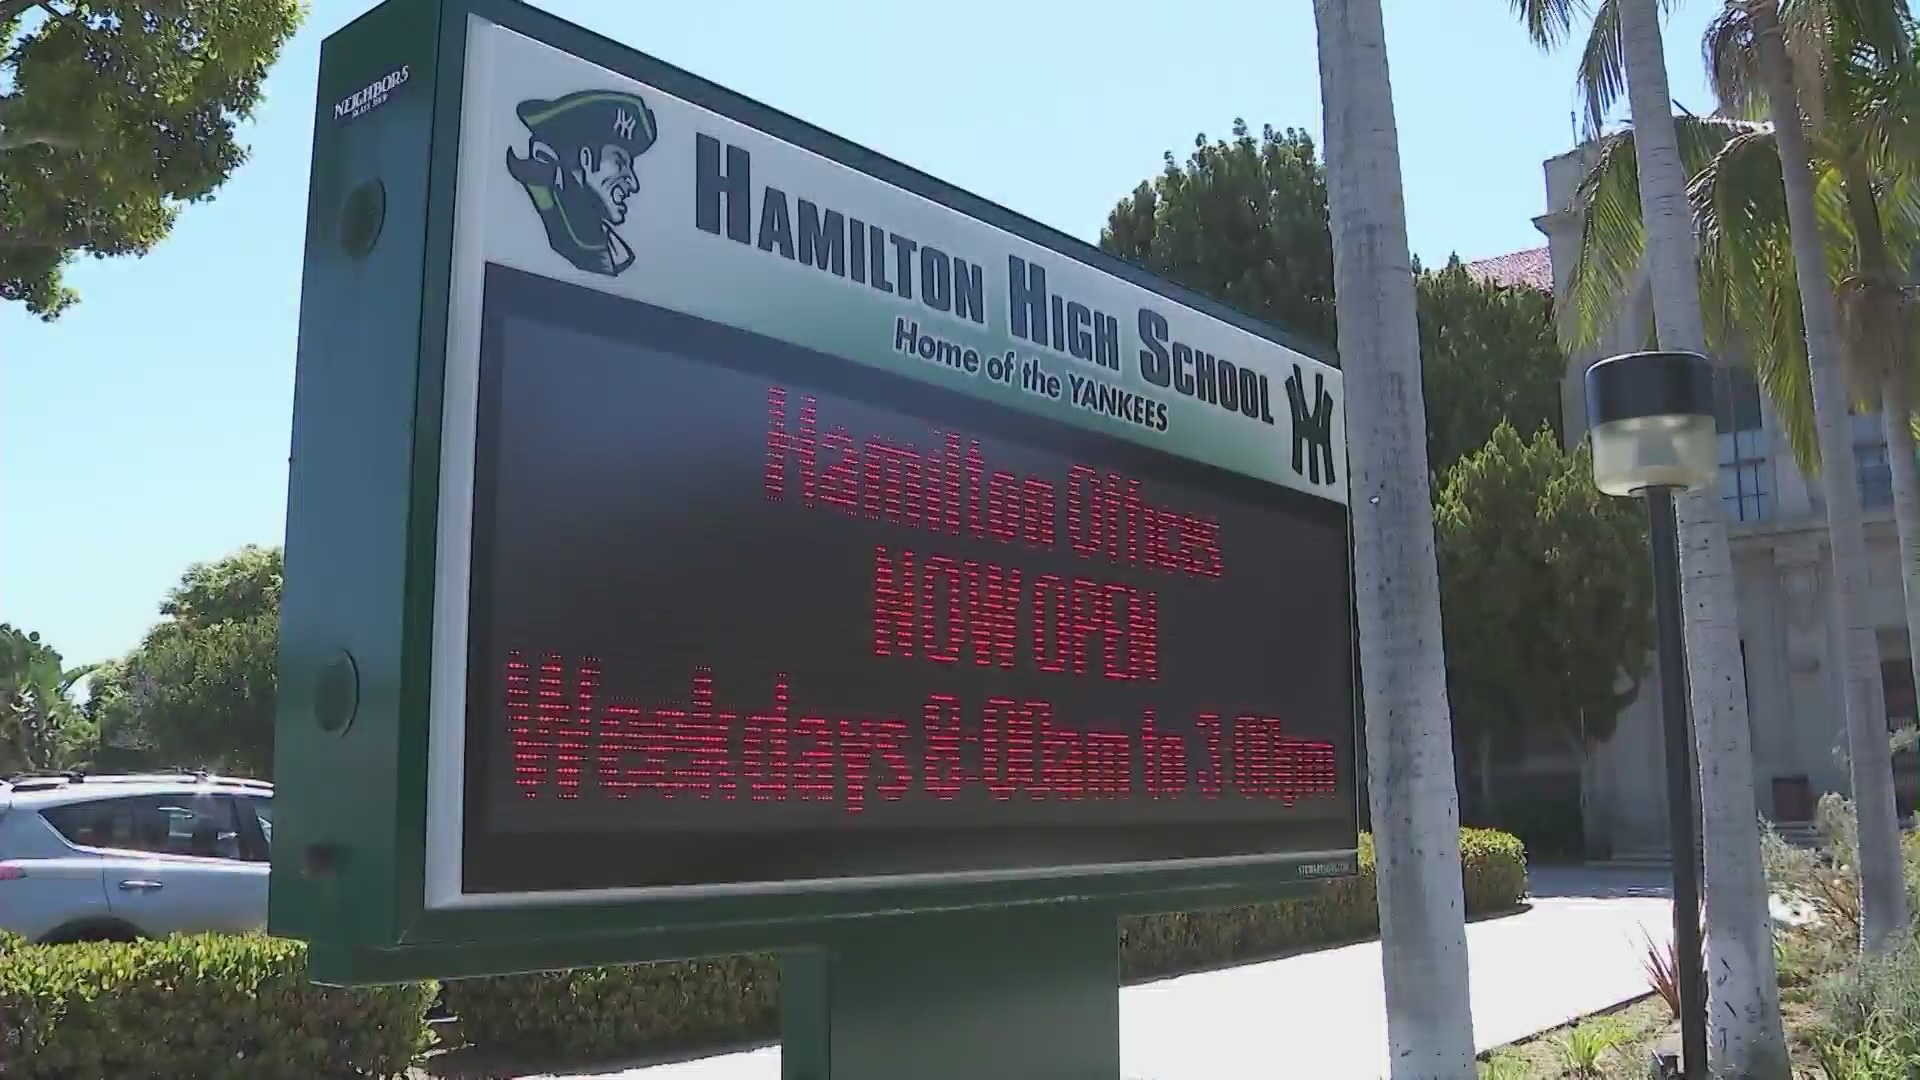 A sign in front of Hamilton High School in the Palms neighborhood is seen in this undated file image. (KTLA)